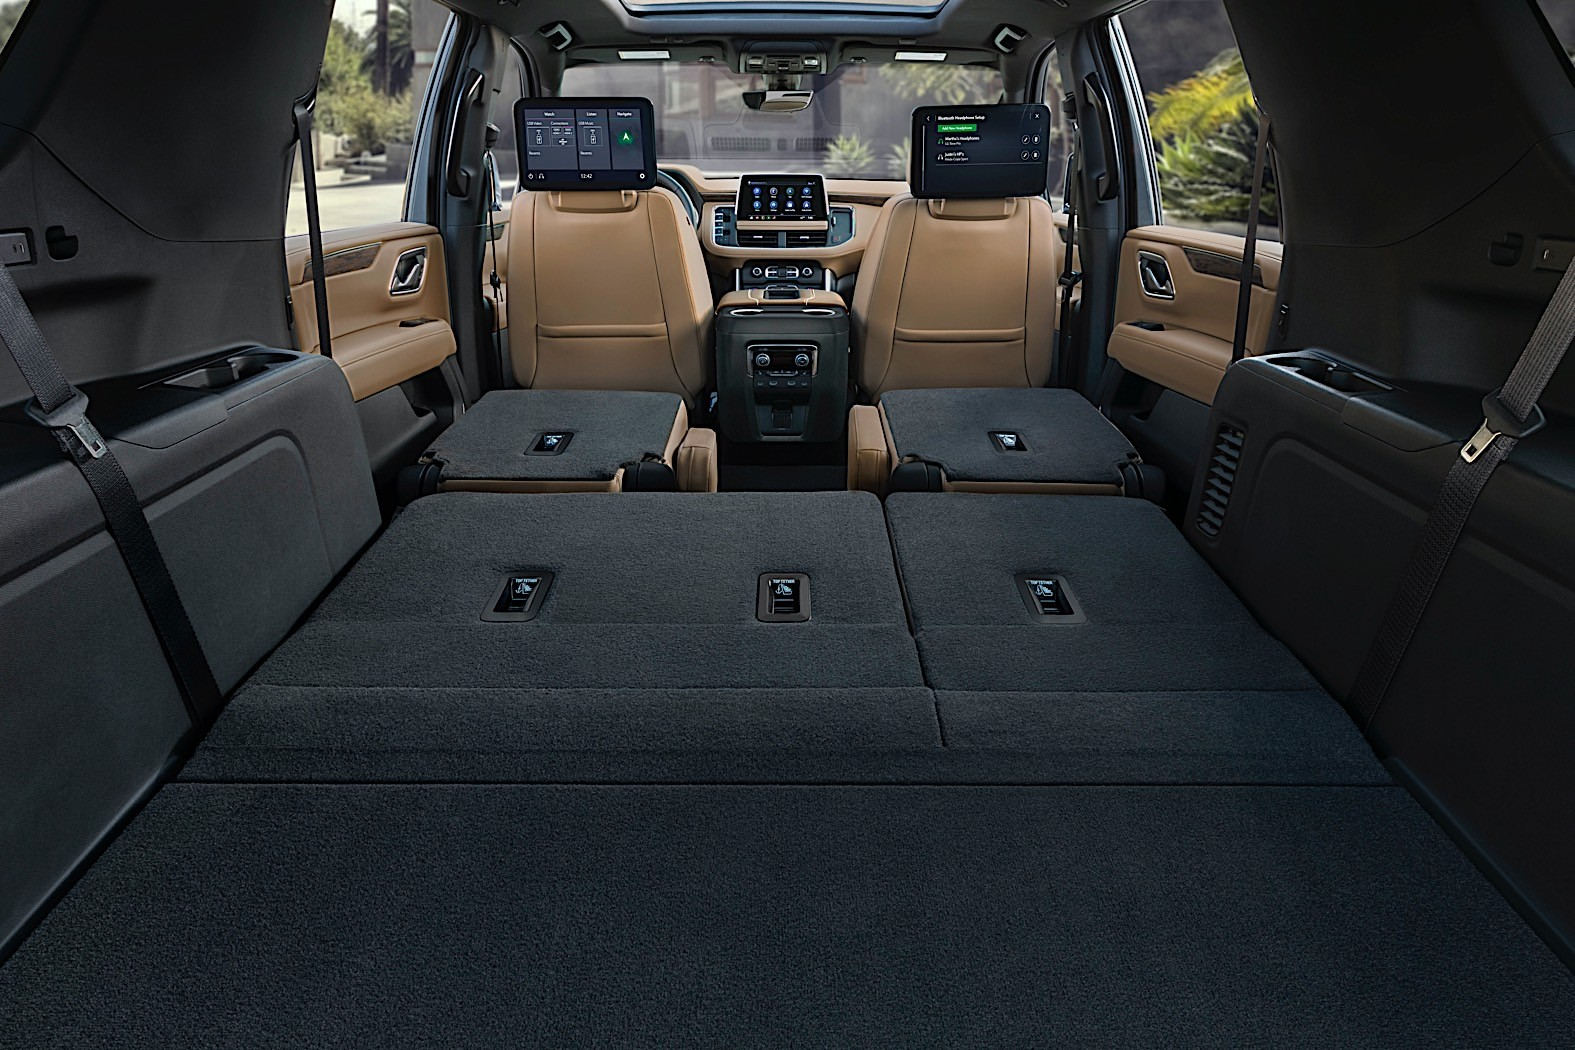 2021 Chevrolet Suburban Costs $2,700 More Than the Tahoe ...